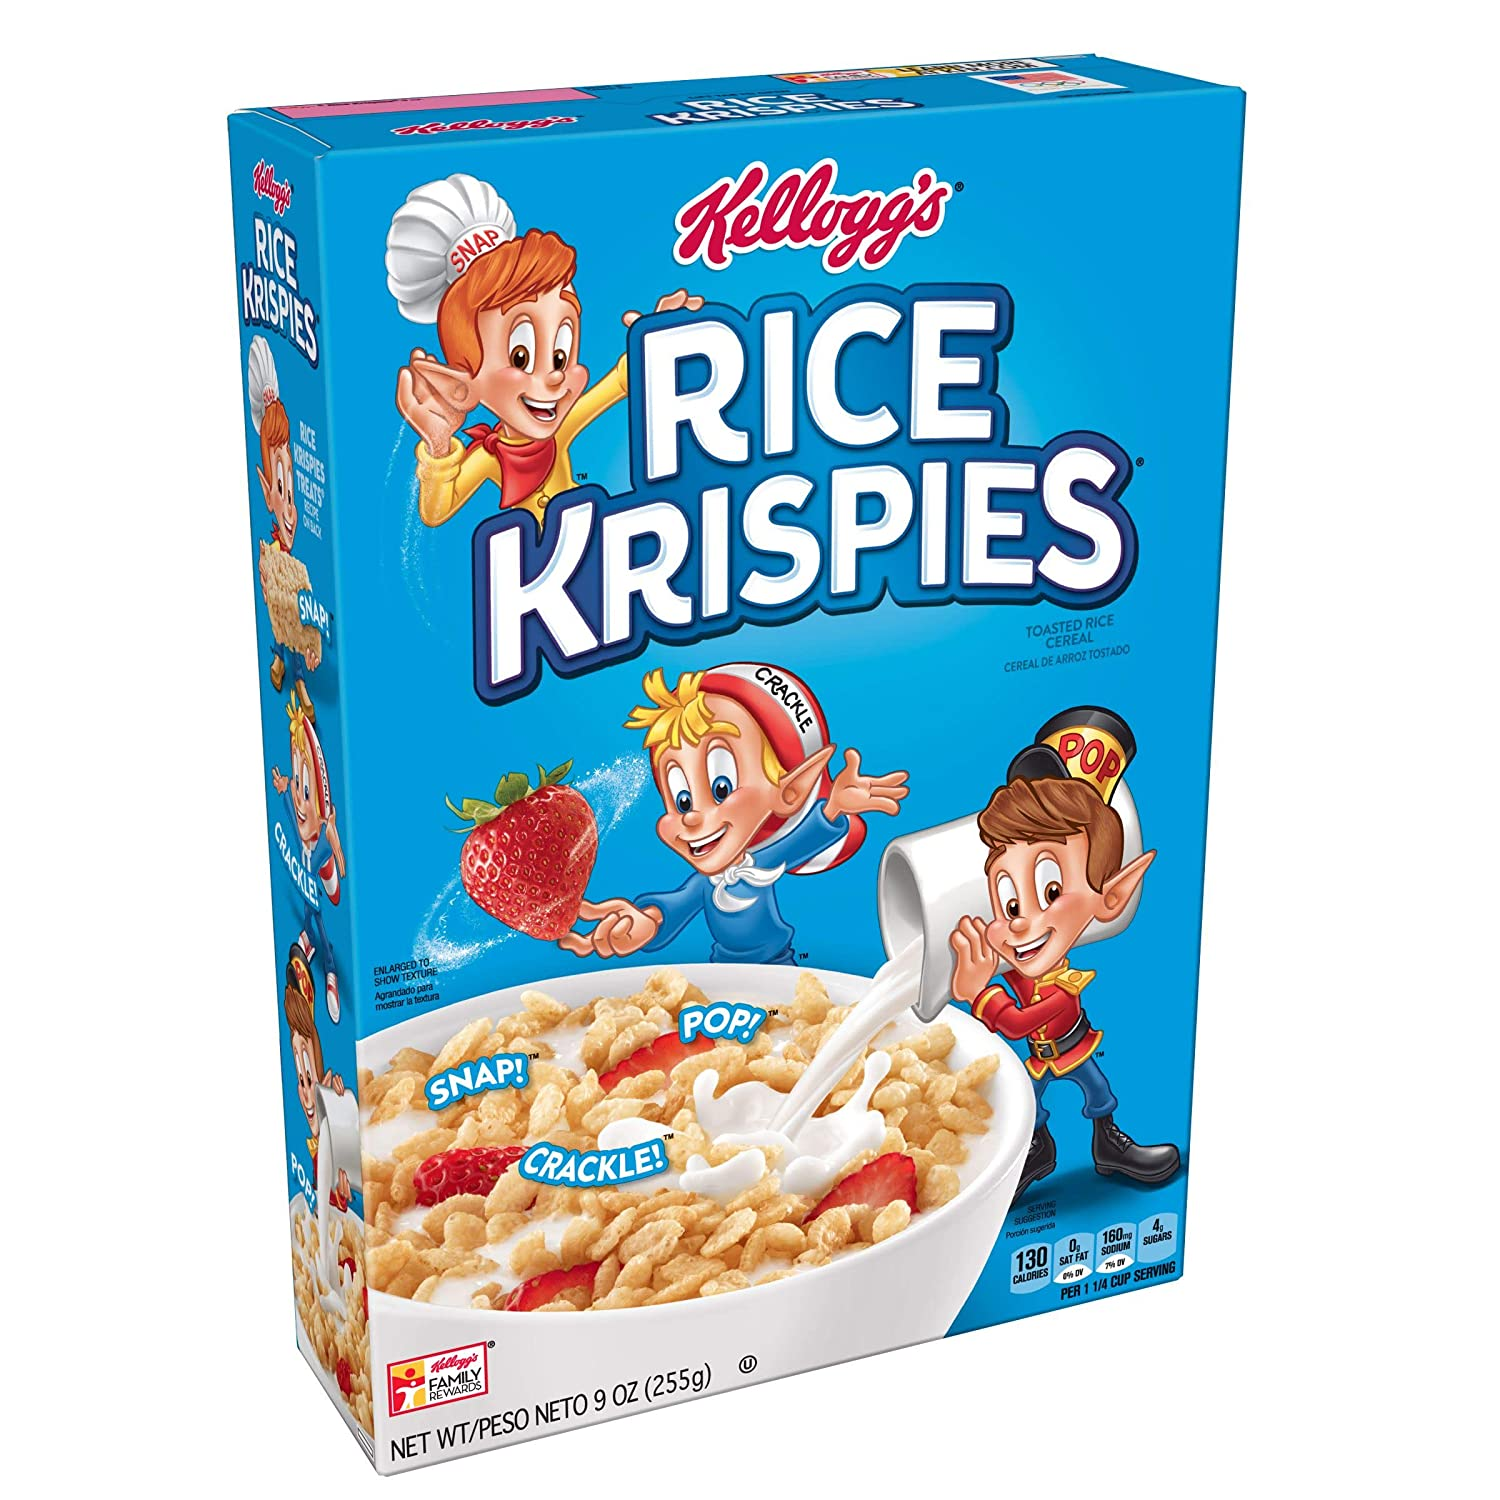 Kelloggs Rice Krispies, Breakfast Cereal, Toasted Rice Cereal, Fat-Free, 9 oz Box